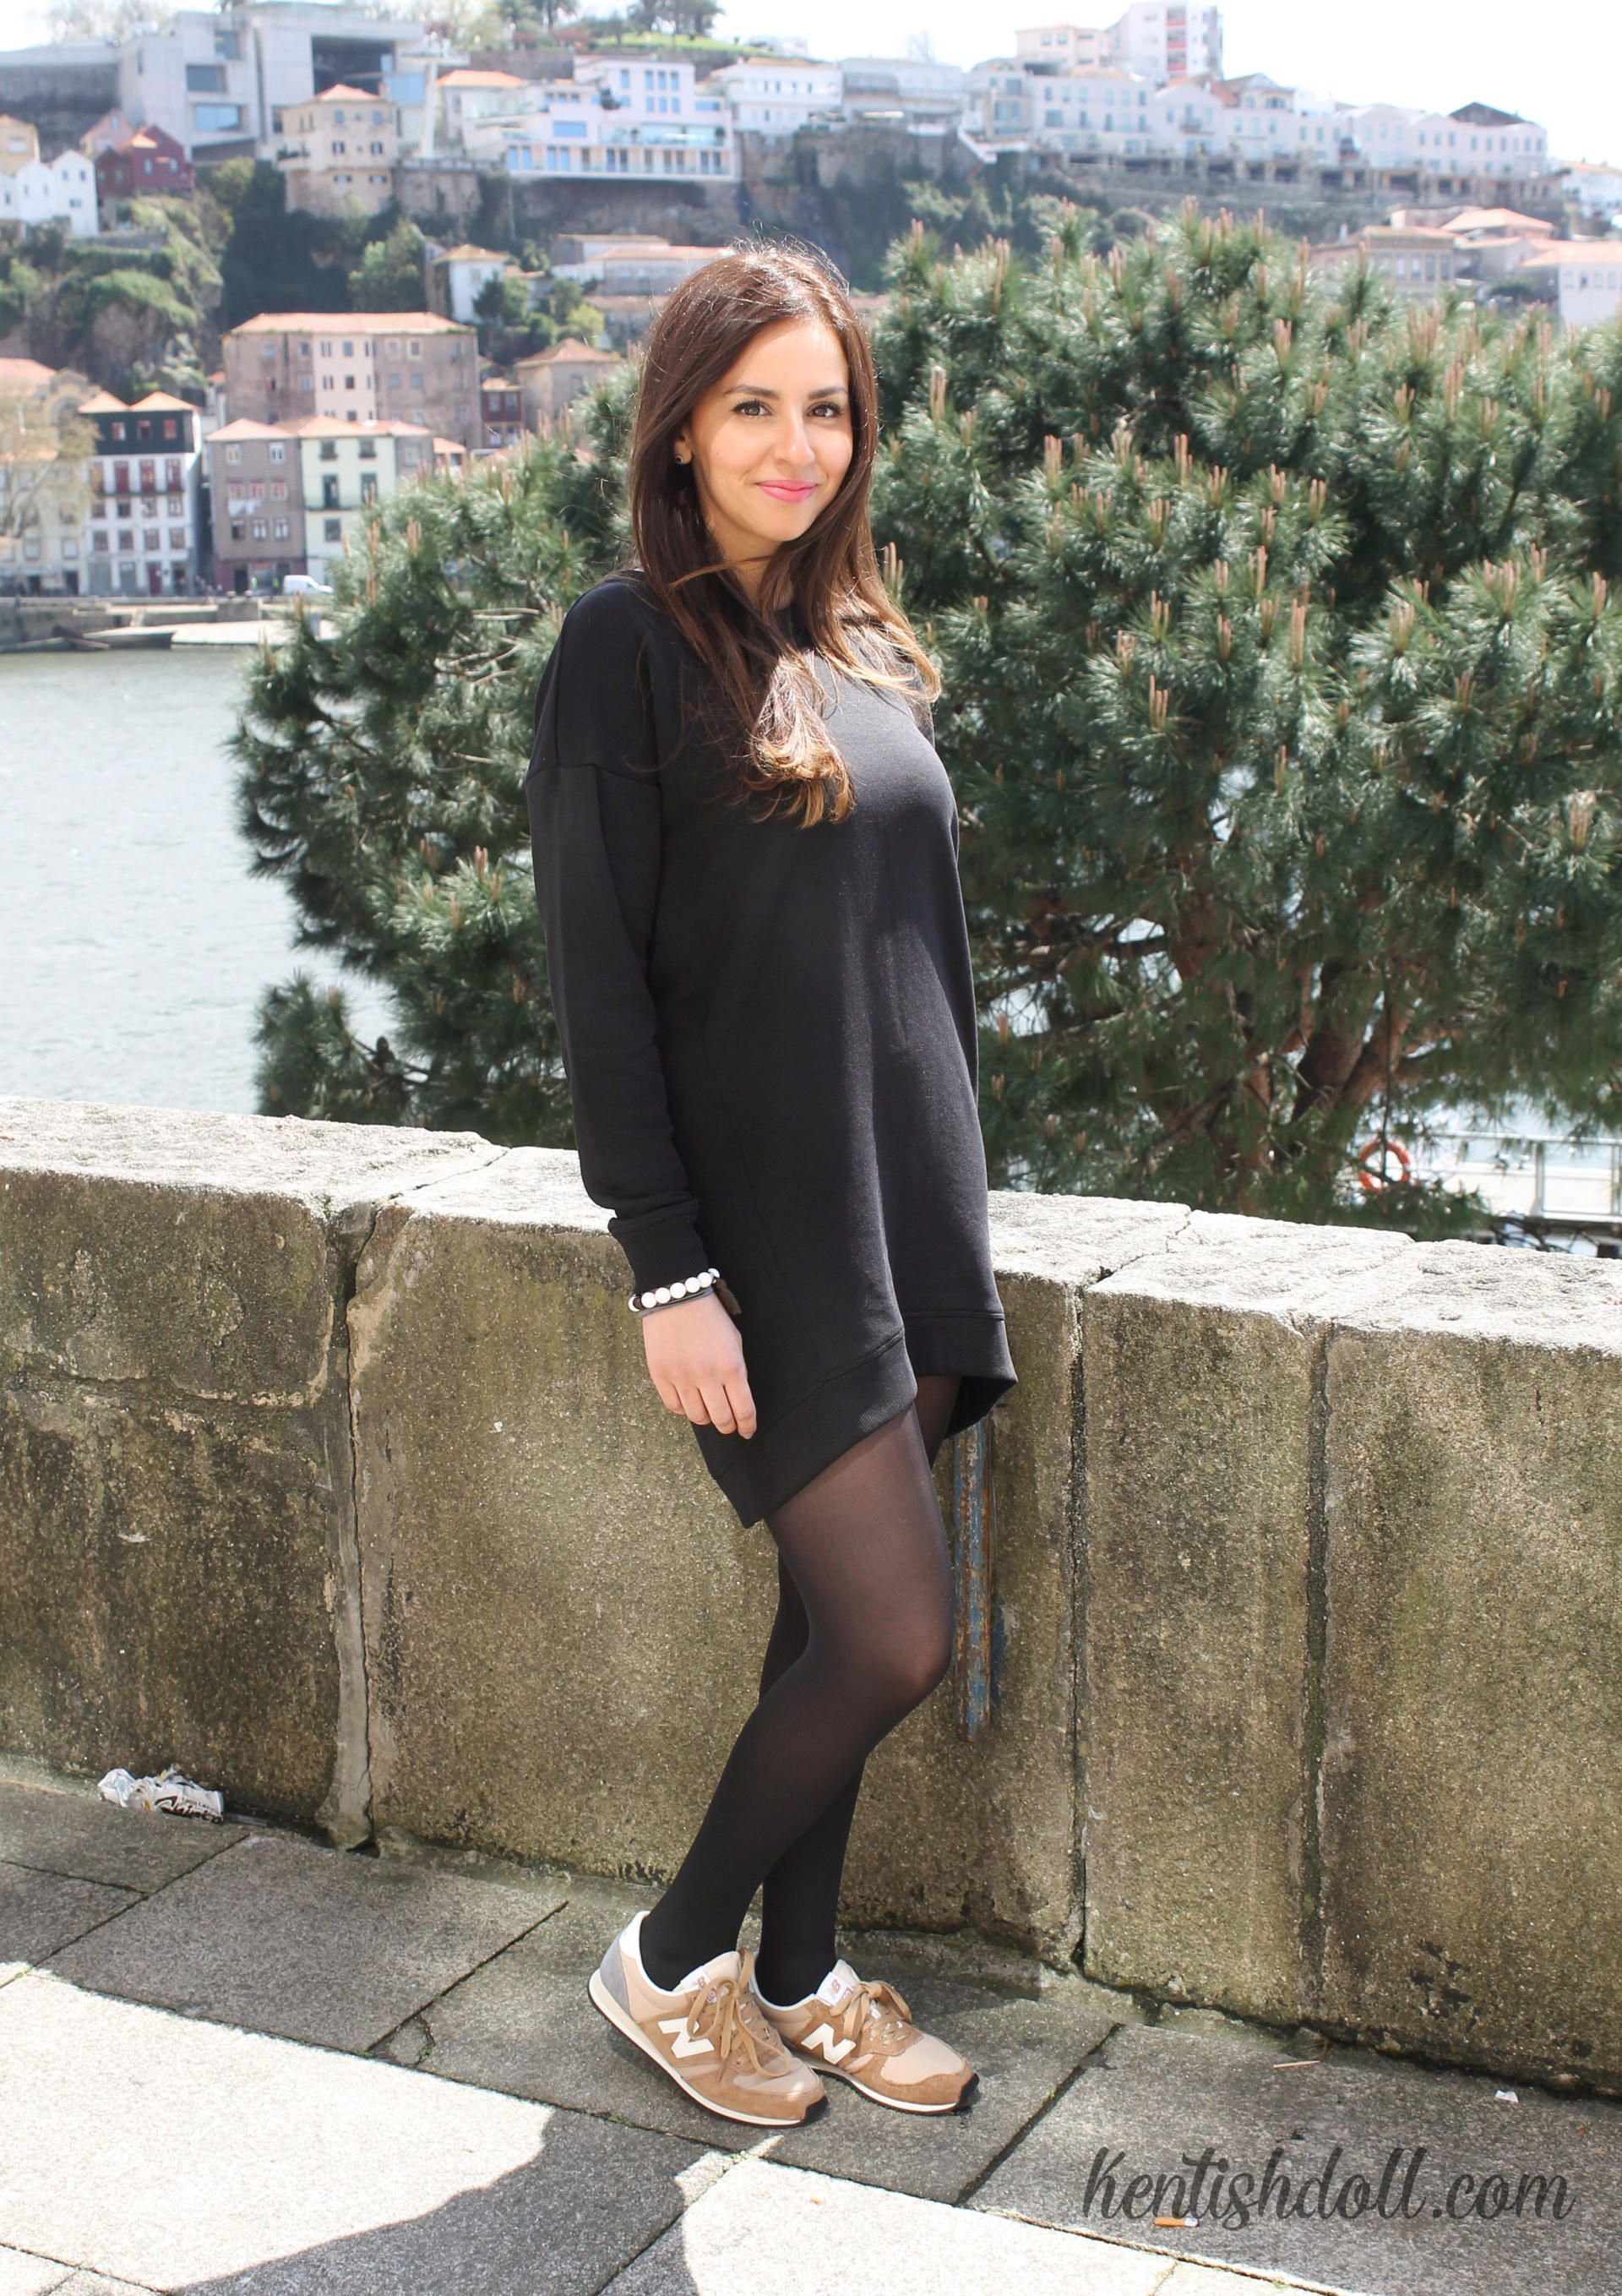 Pantyhose with an outfit foto 961